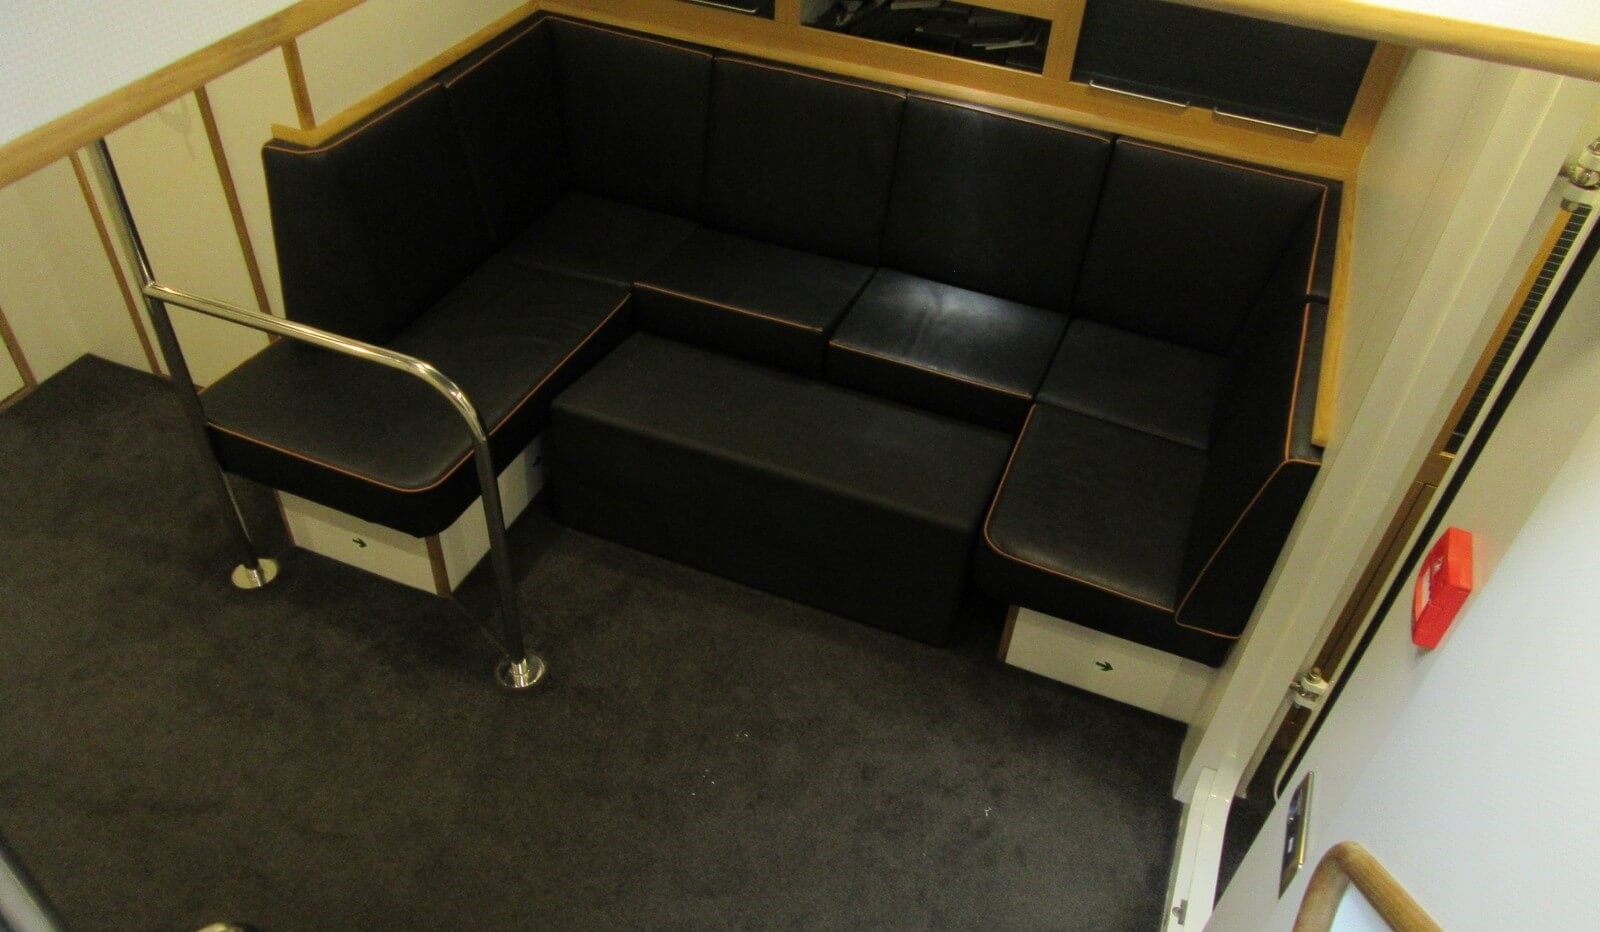 Seating area for crew below main deck